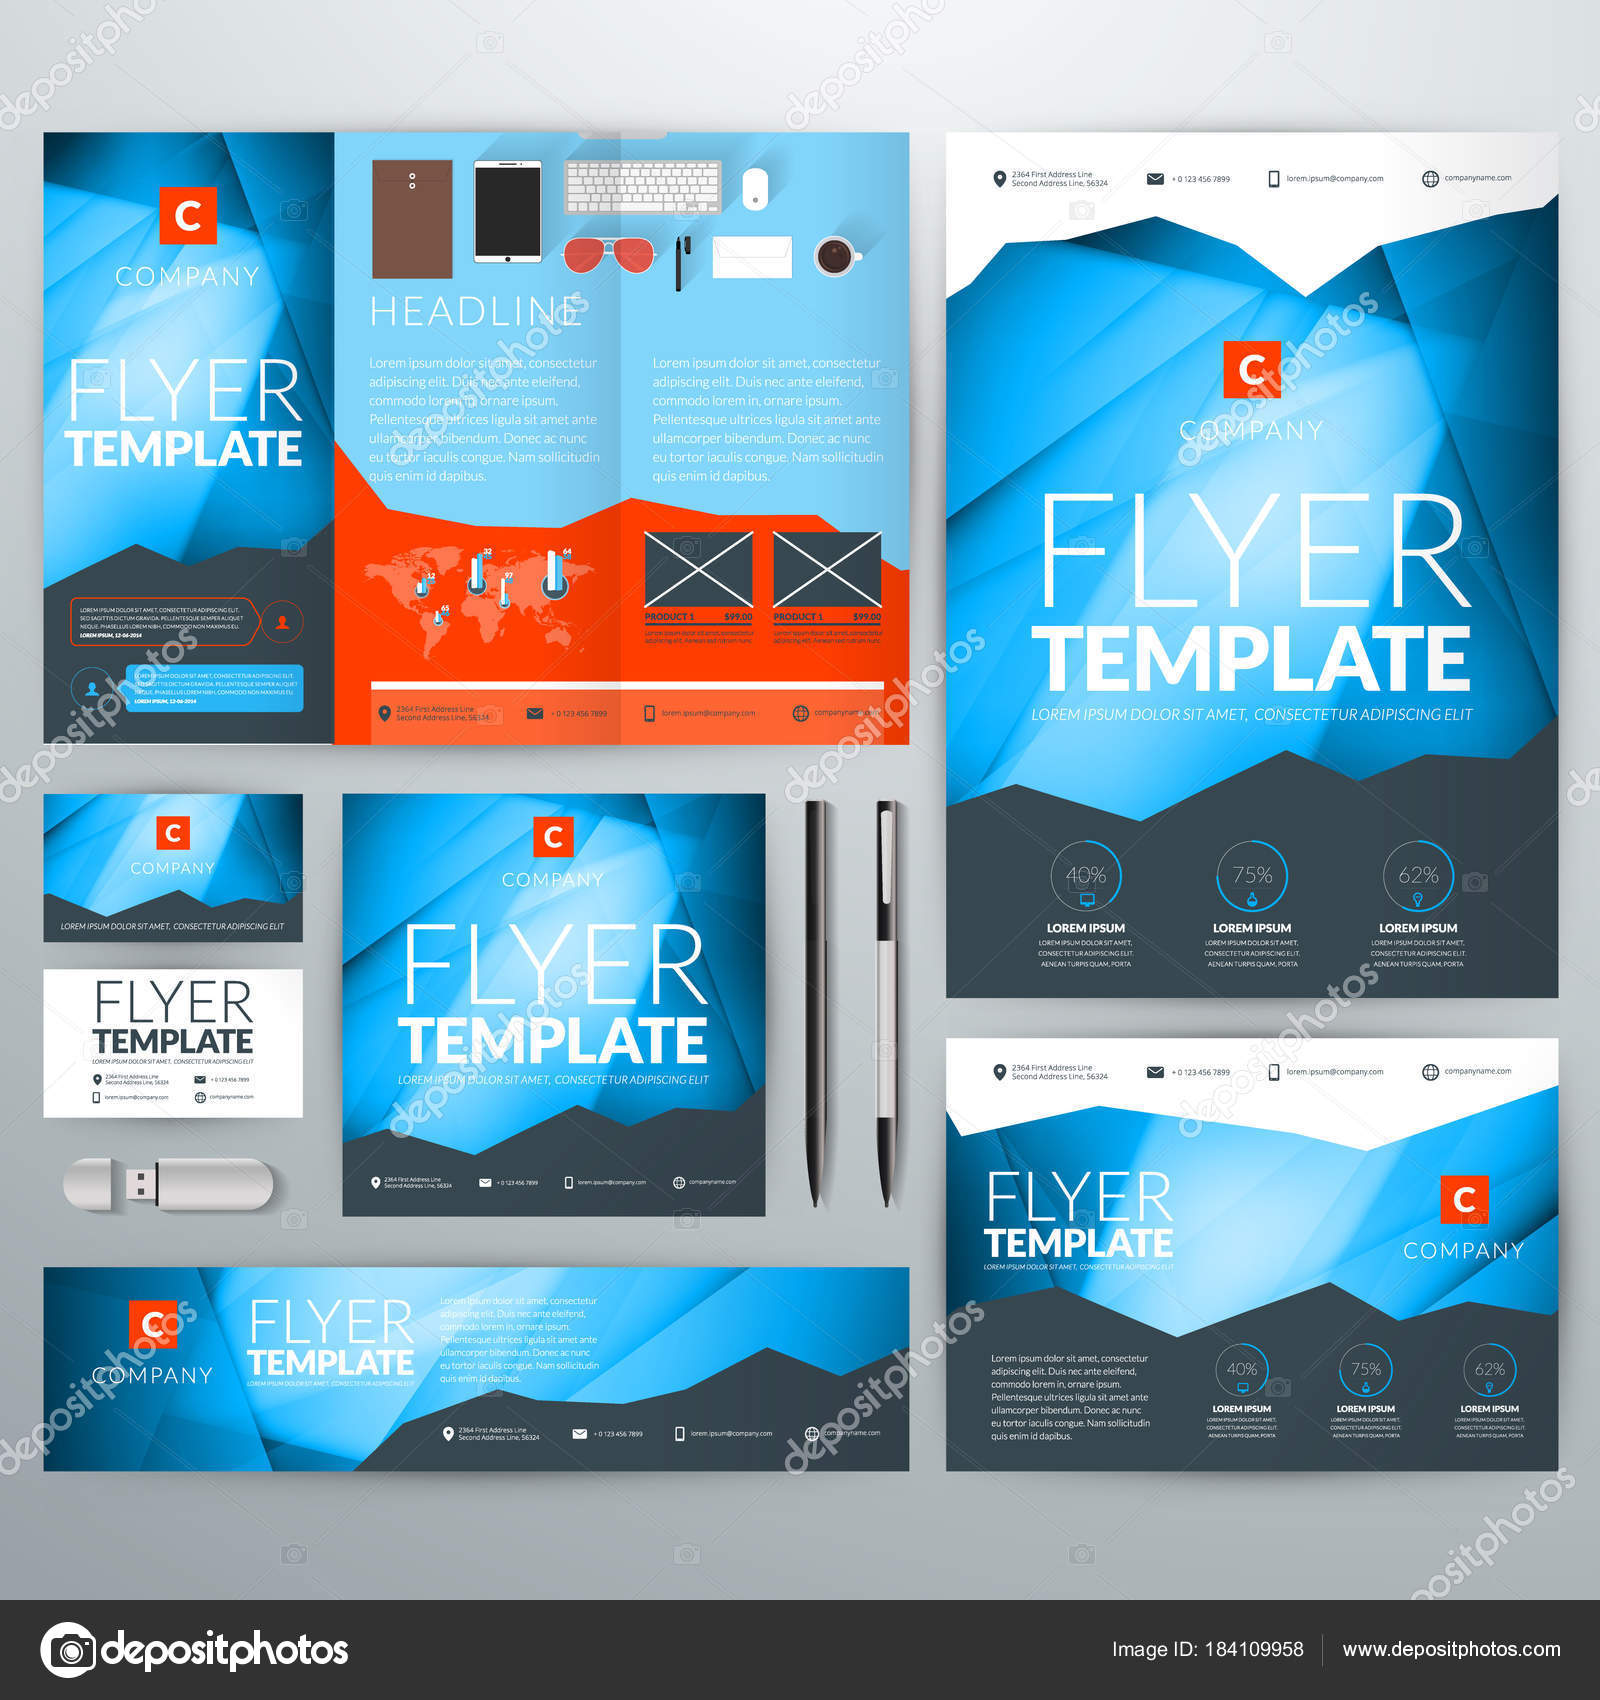 Identite Visuelle Avec Fond Abstrait Vector Web Banniere Flyer Depliant Affiche Carte De Visite Illustration Stock